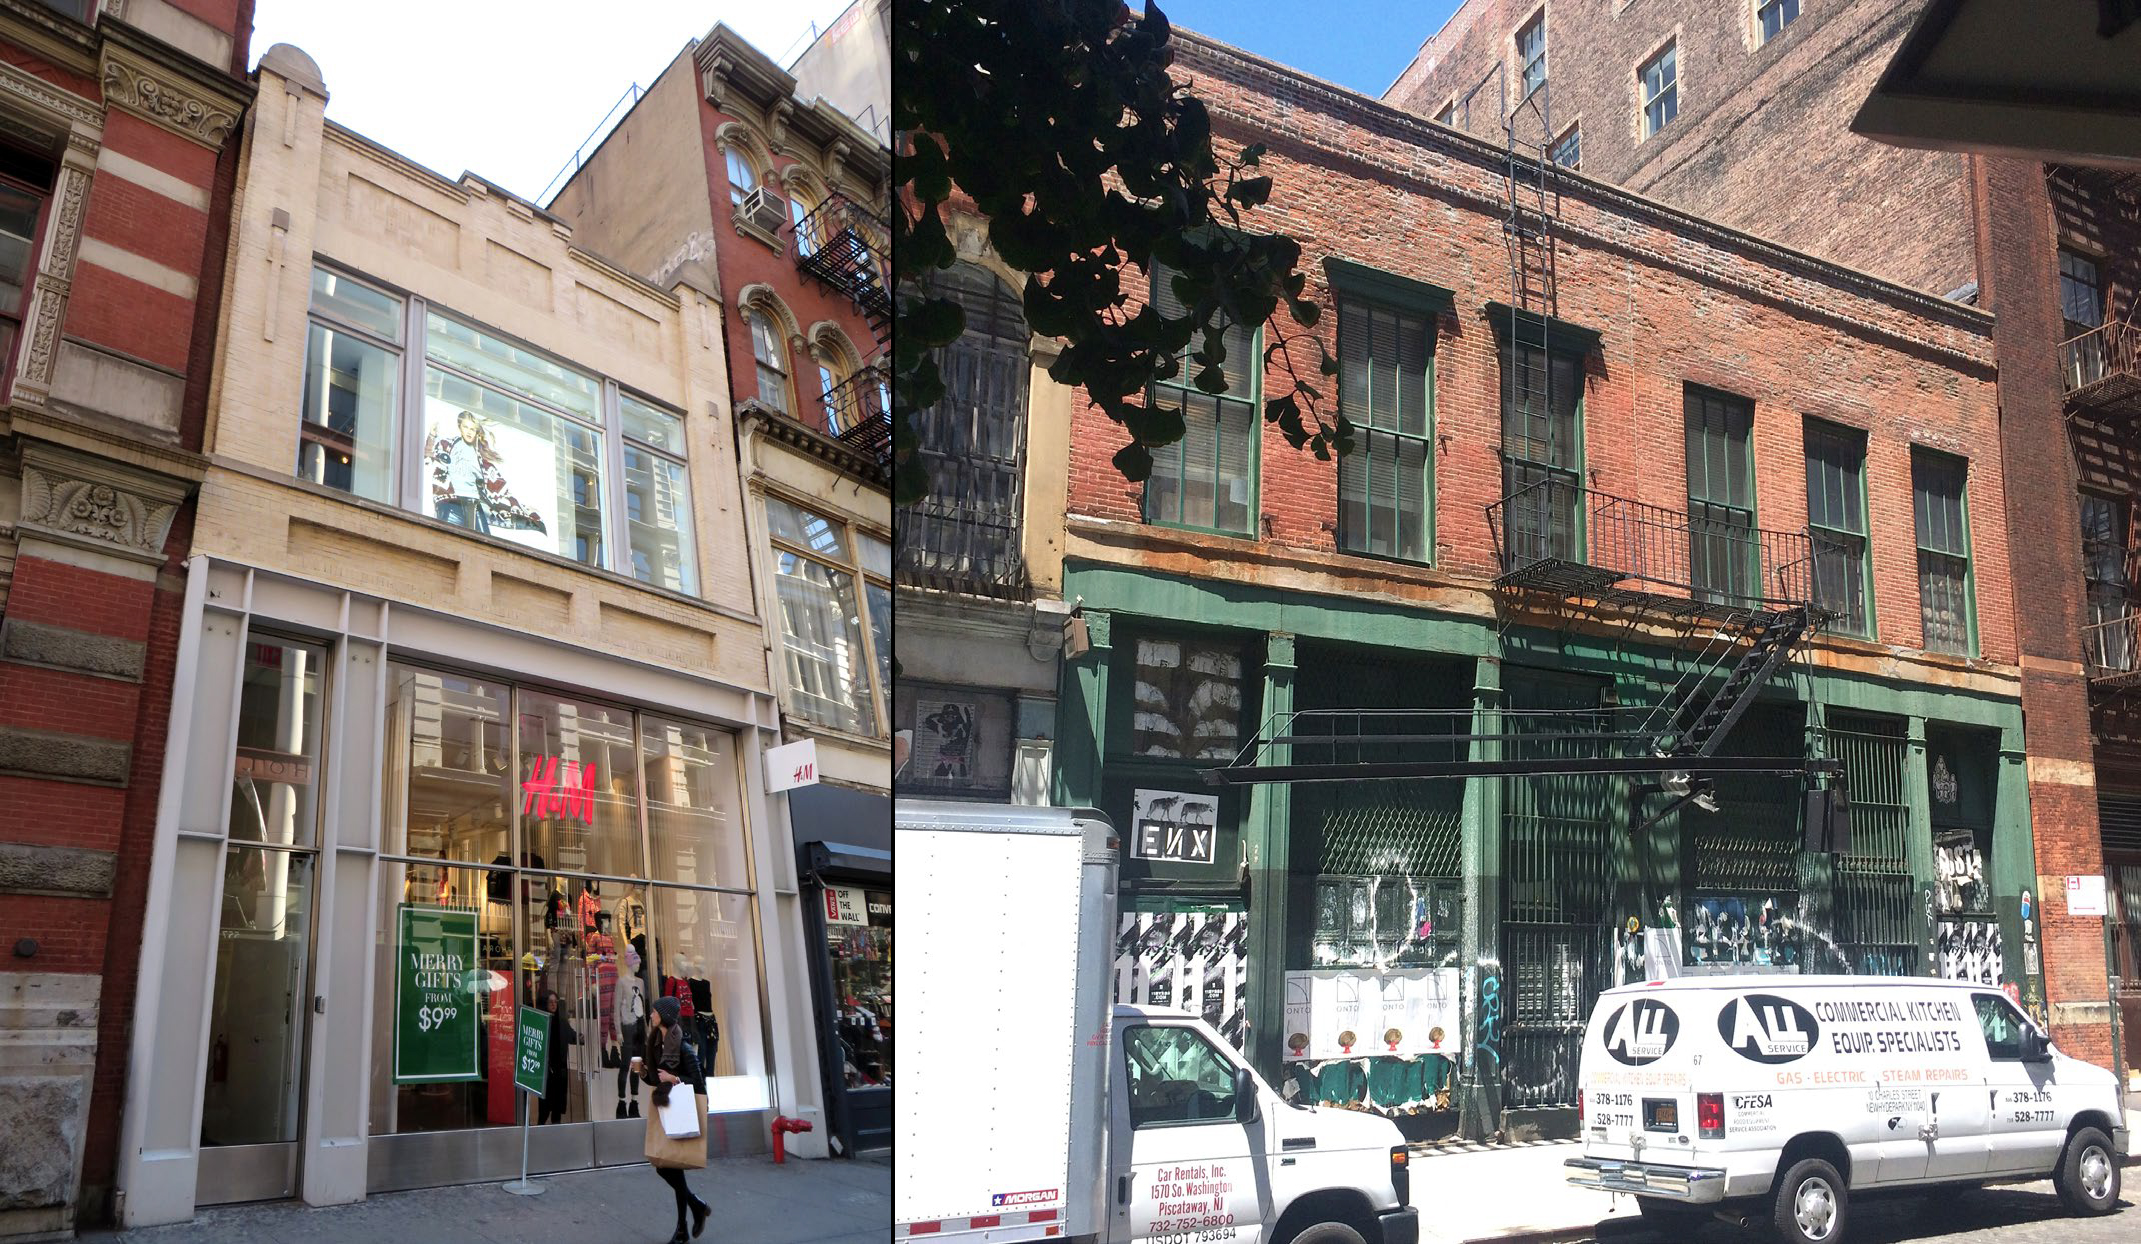 Existing conditions at 558 Broadway (left) and 94-96 Crosby Street (right)